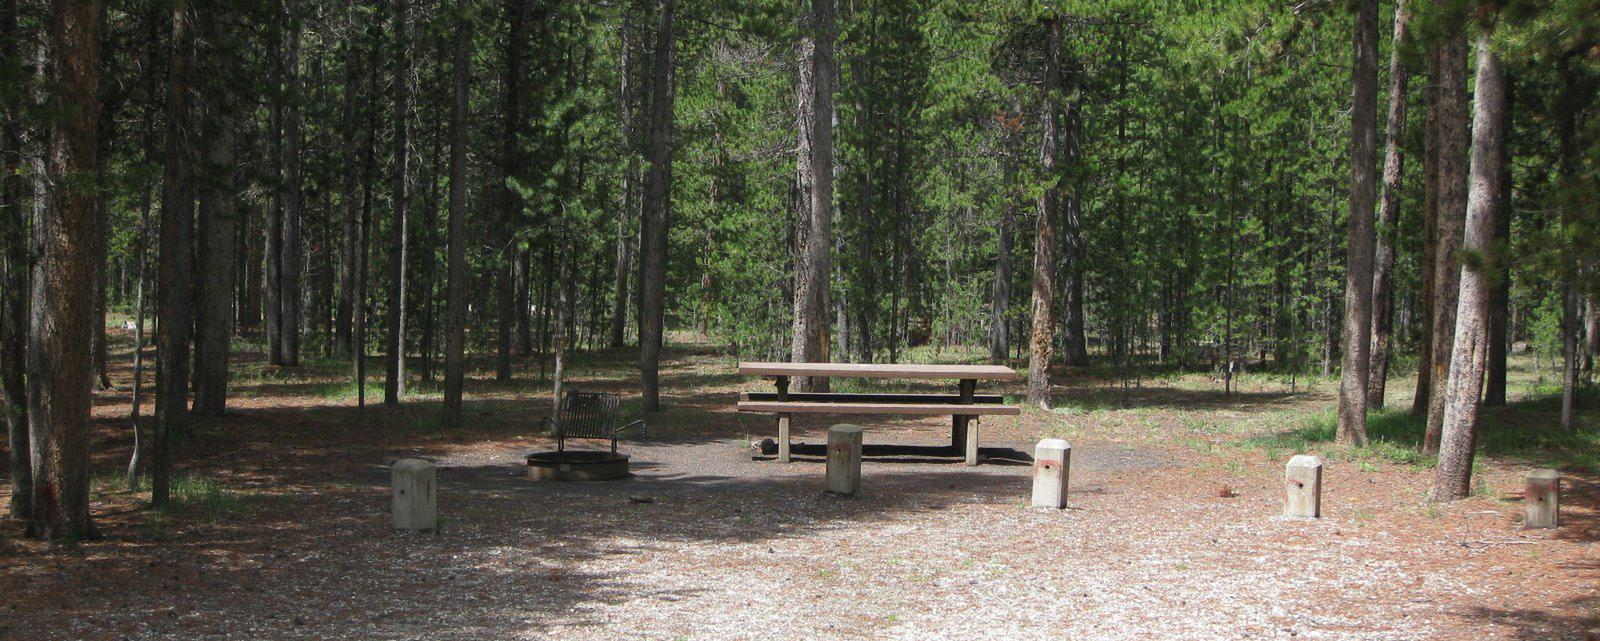 Site B3, surrounded by pine trees, picnic table & fire ringSite B3